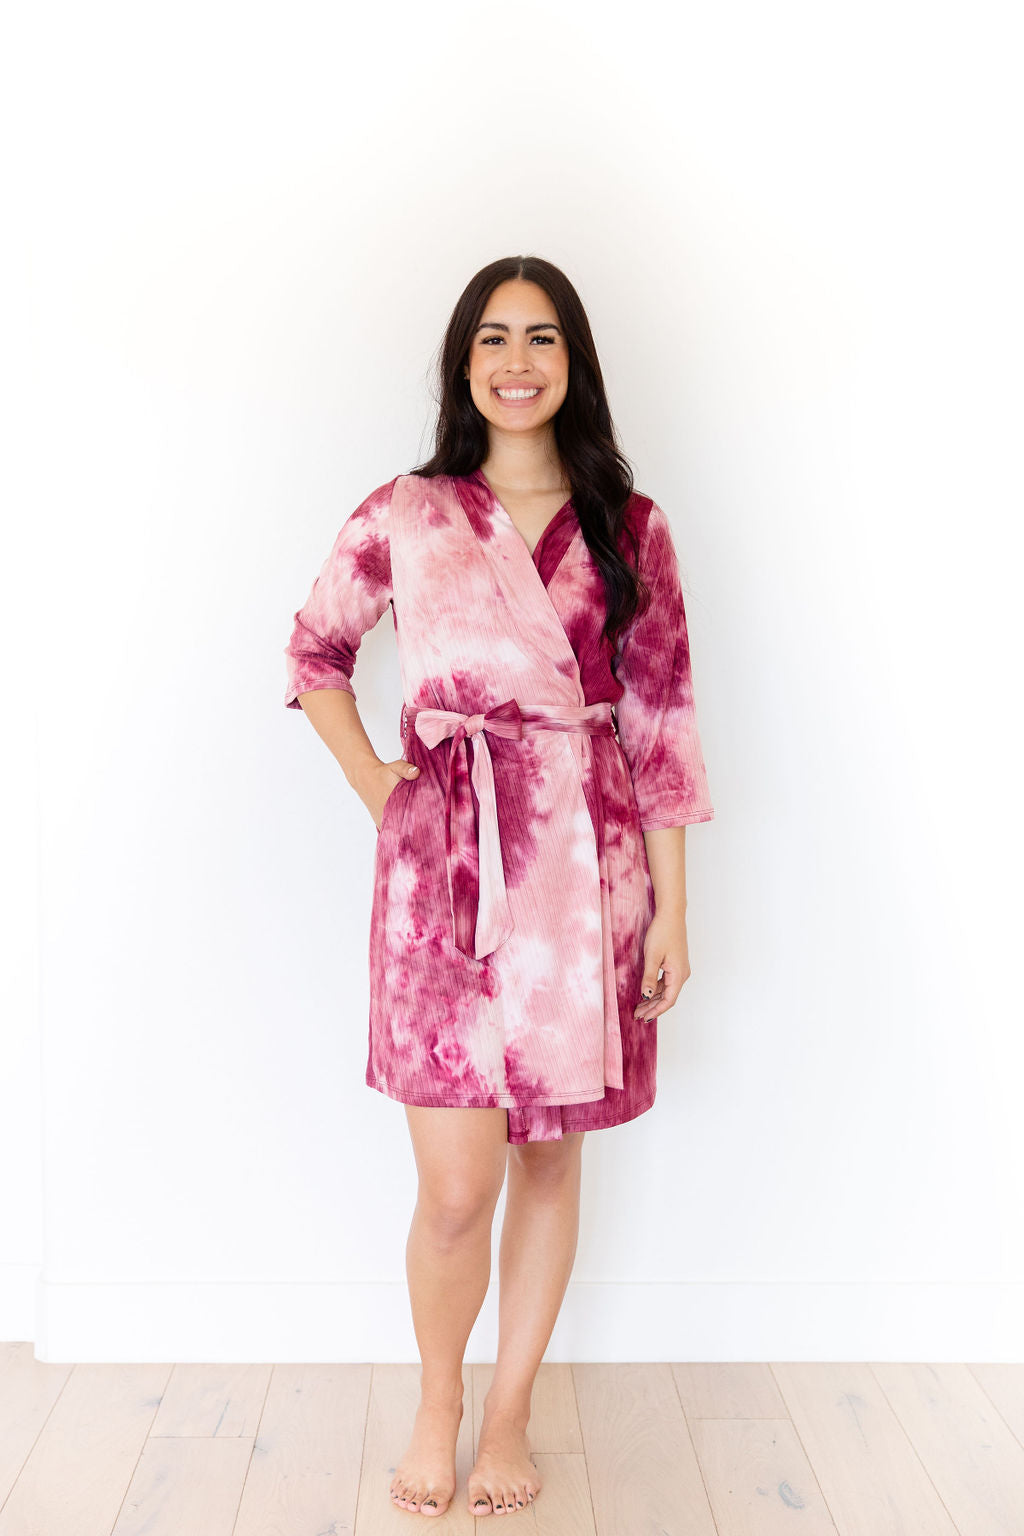 CRANBERRY + LIGHT MAUVE RIBBED TIE DYE WOMEN'S SHORT ROBE